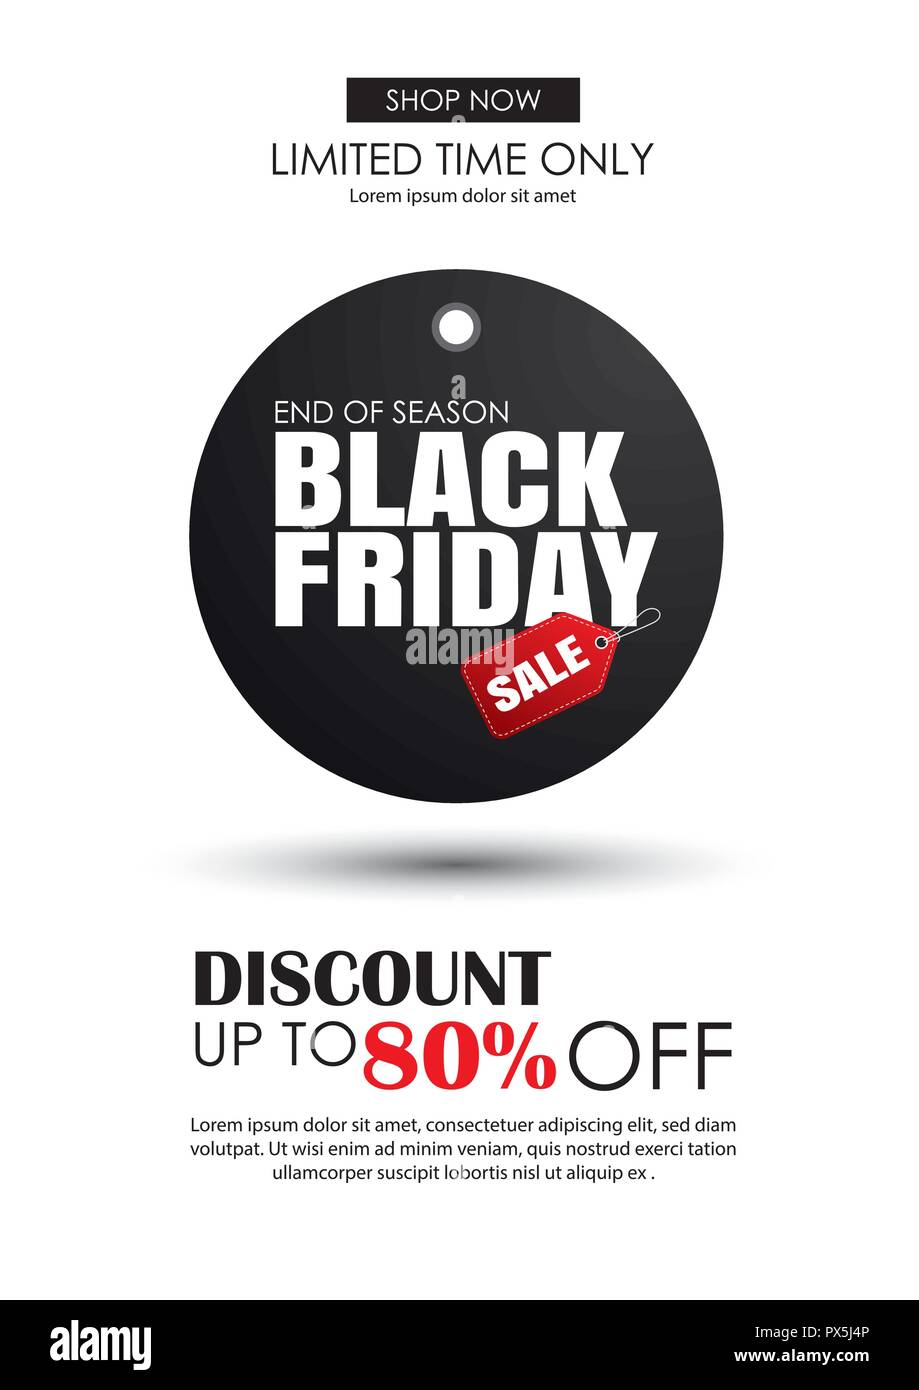 black friday sale flyer template white background with black tag